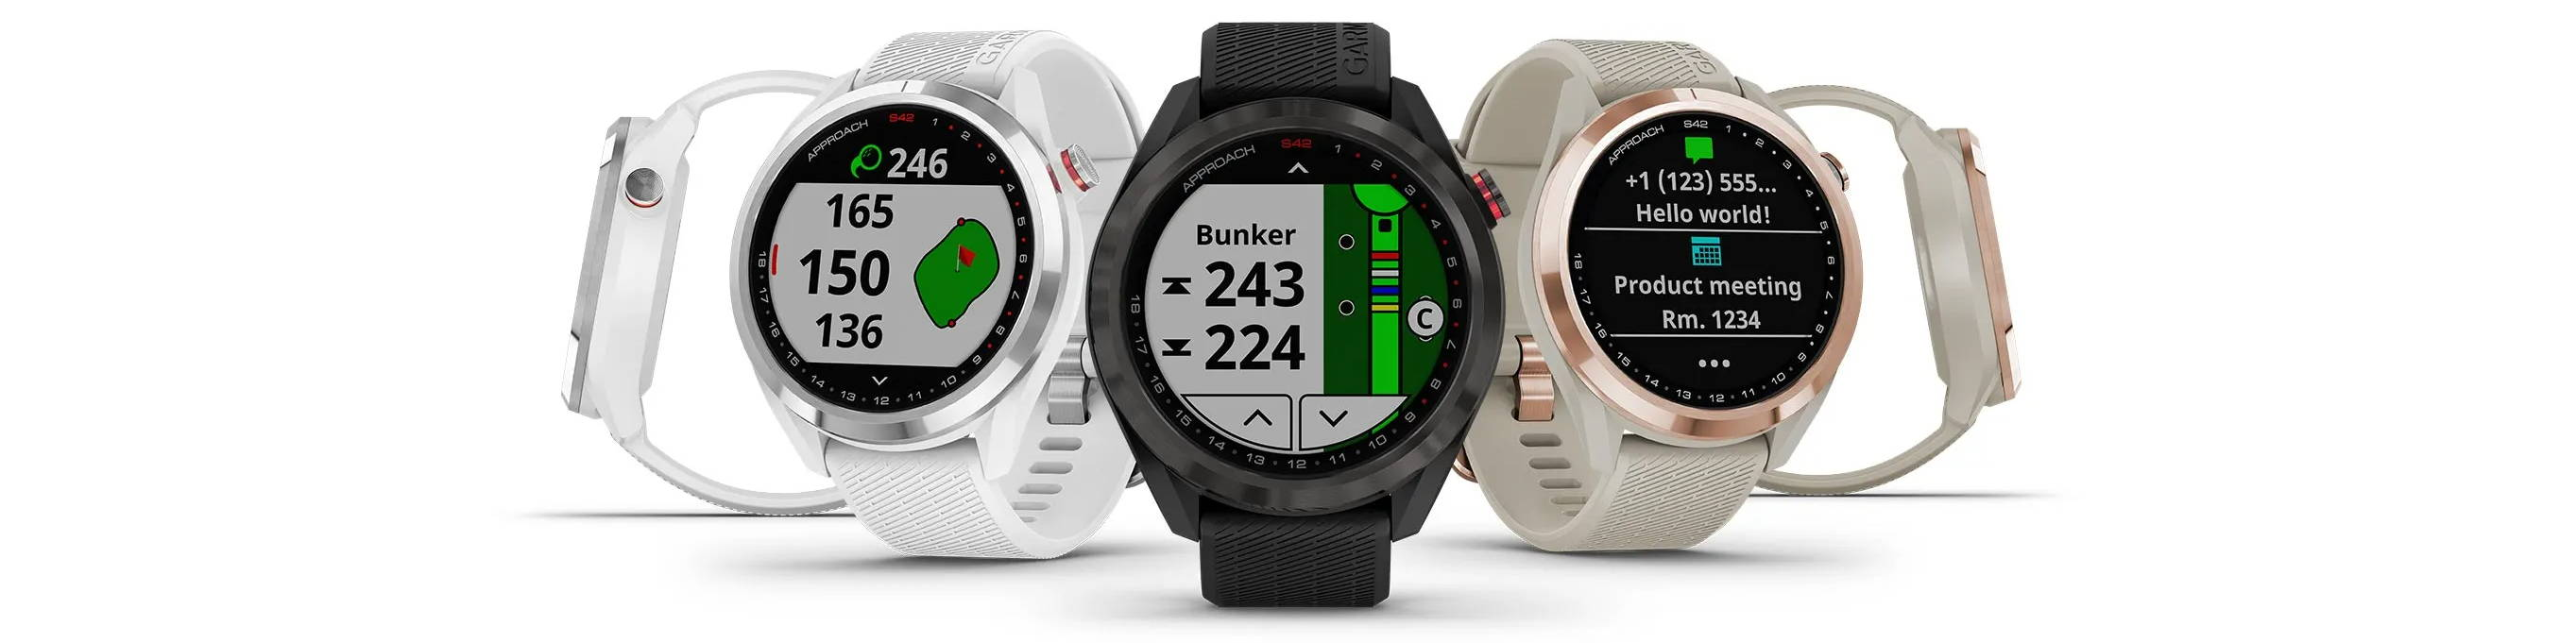 Garmin Approach S42 Golf GPS Smartwatch with Color Touchscreen - Gunmetal, Rose Gold, White Silver